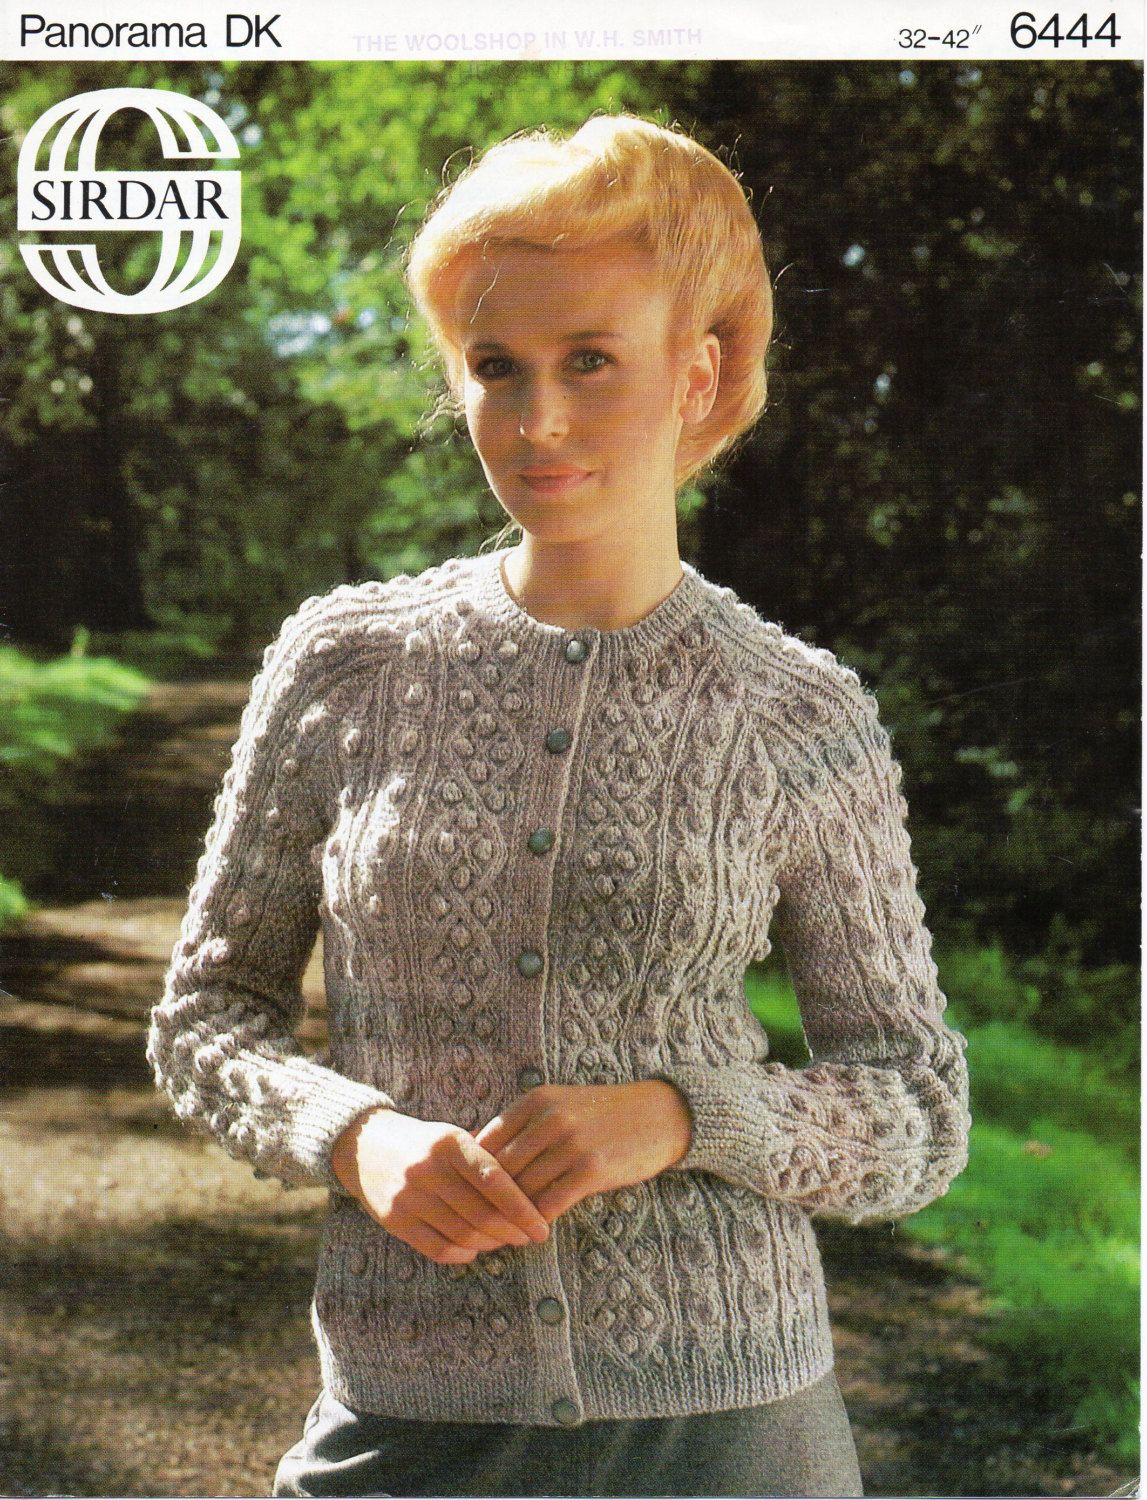 cc1ac555b24a womens bobble stitch   cable cardigan knitting pattern aran style jacket  32-42 inch DK womens knitting pattern pdf instant download by Hobohooks on  Etsy